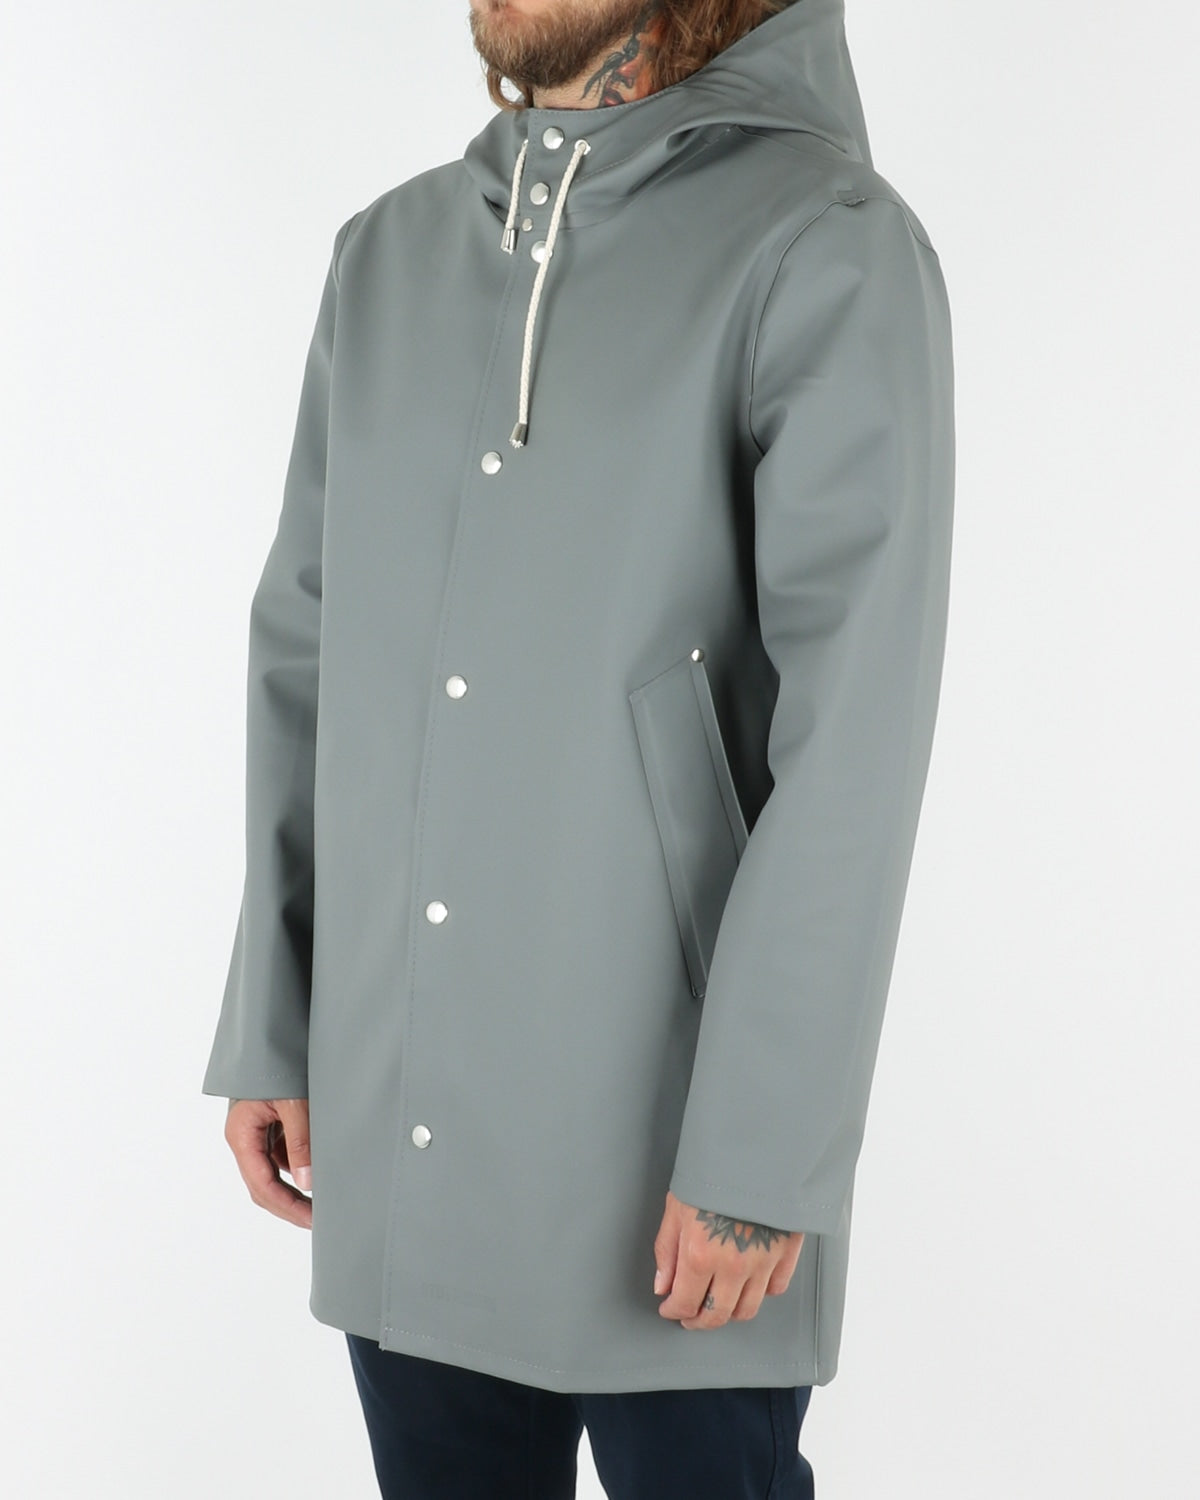 stutterheim_stockholm_raincoat_grey_view_2_4